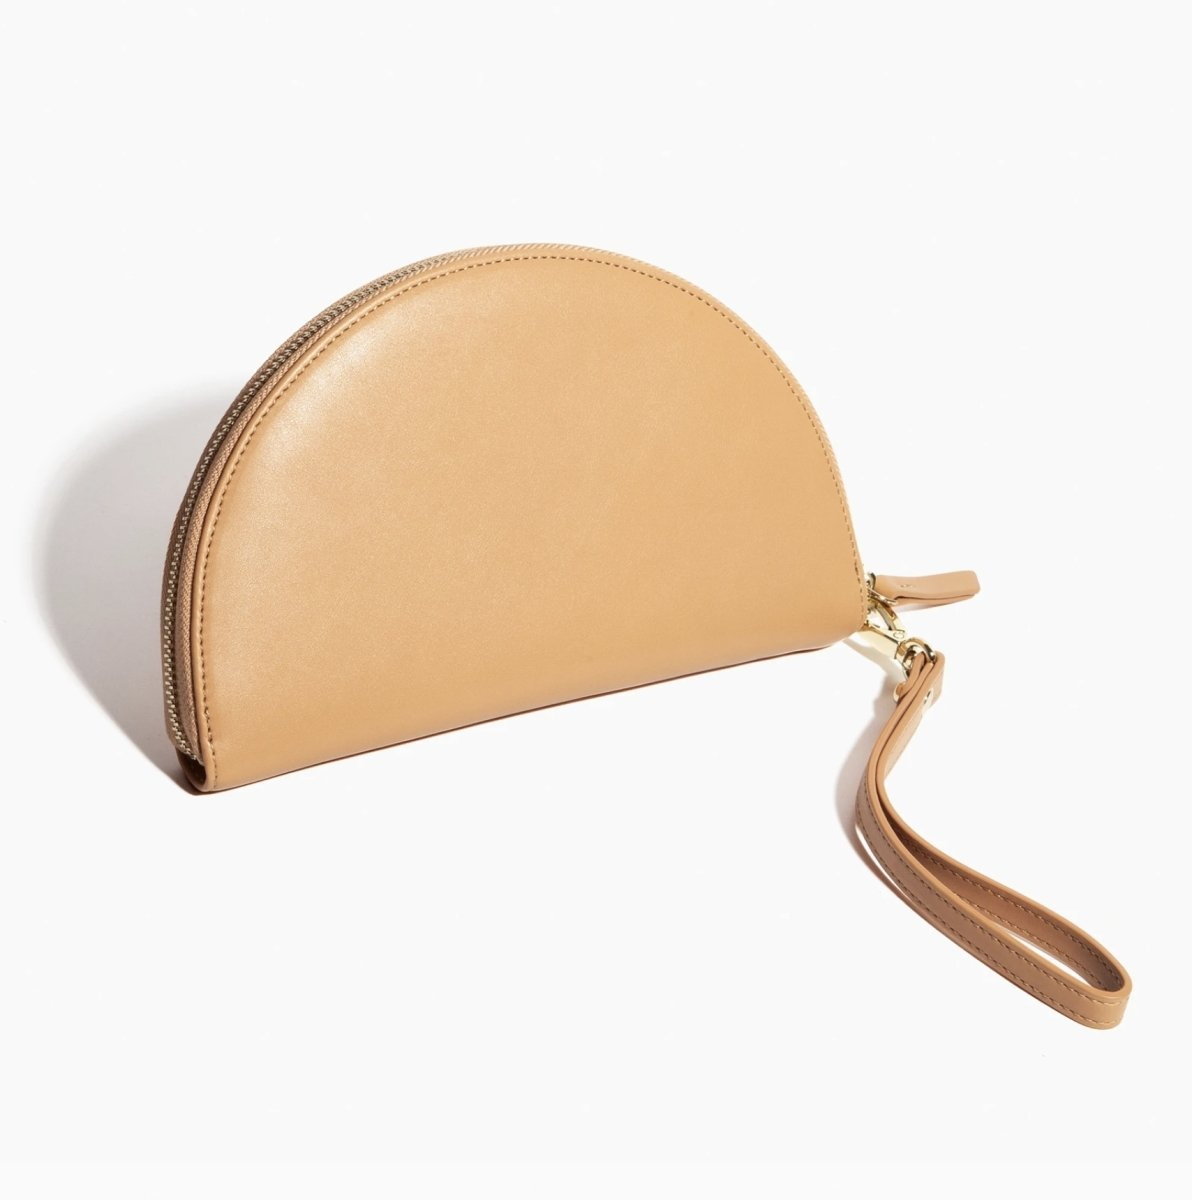 Poketo Half Moon Clutch in Tan